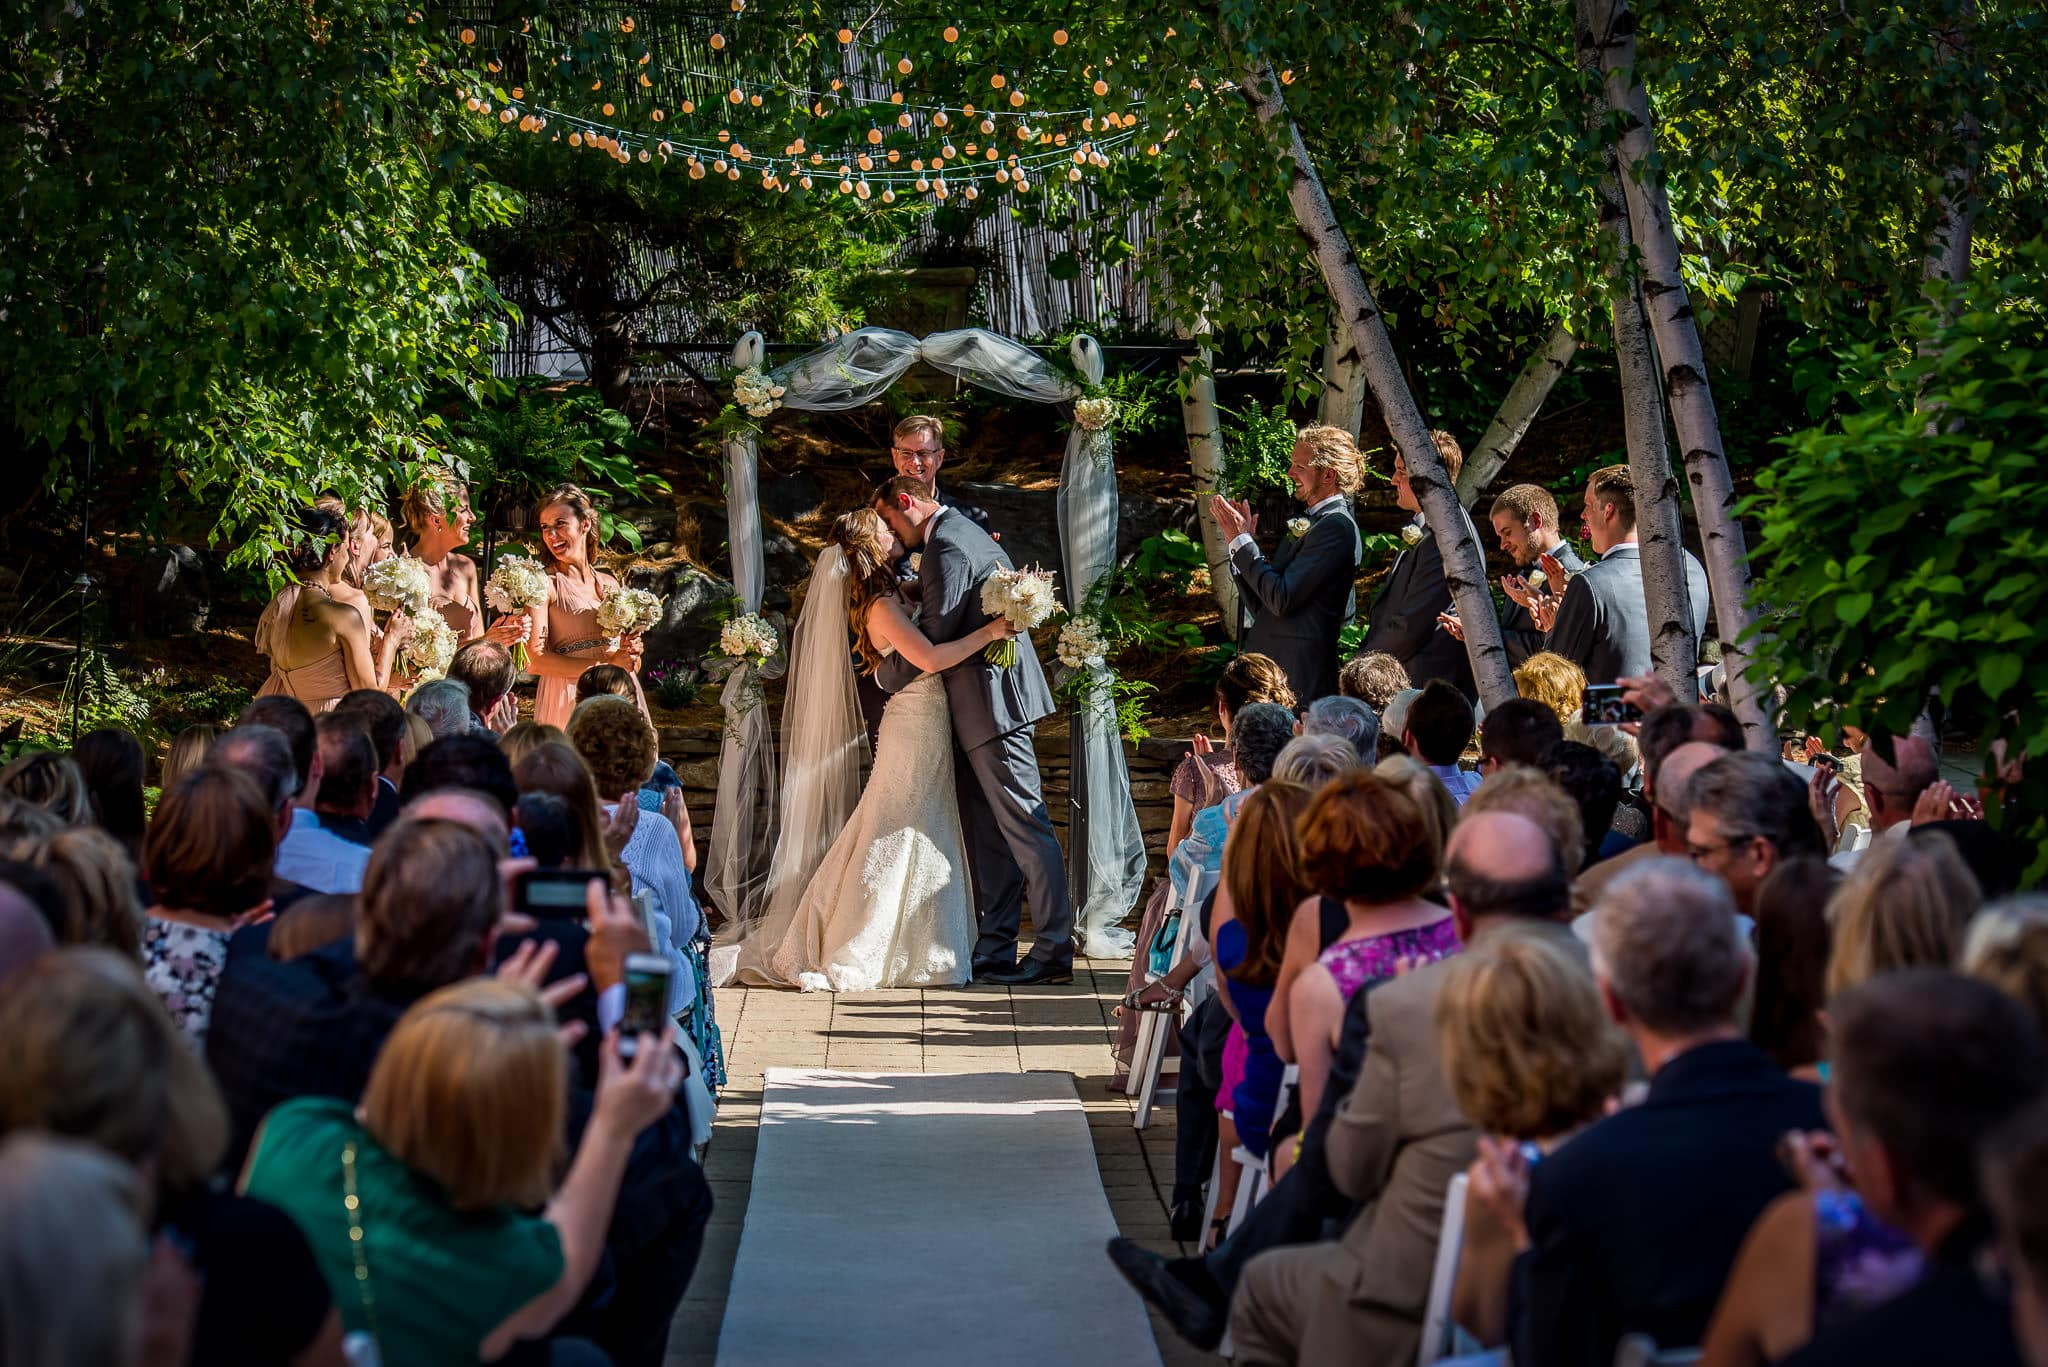 Bride & Groom share their first kiss during their wedding ceremony at the Van Dusen Mansion